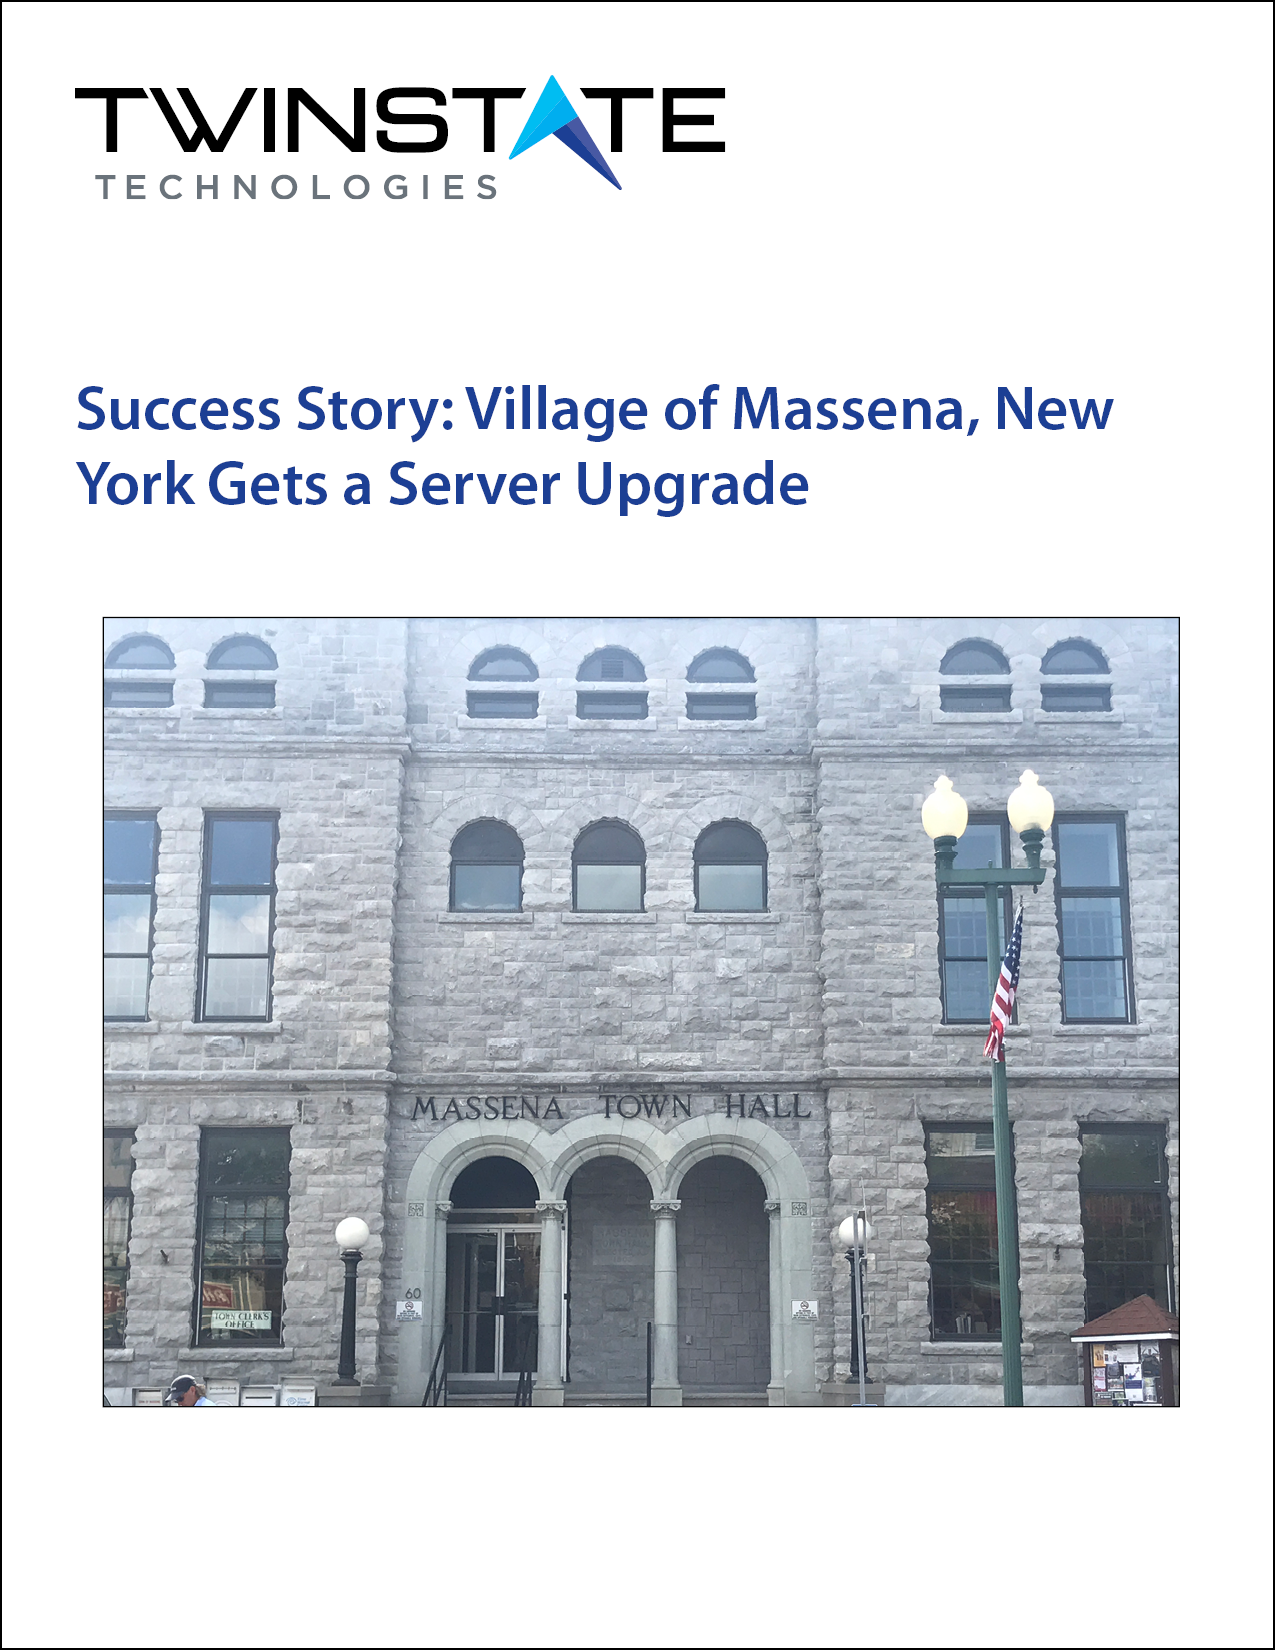 Knowledge Center_Success Story_Twinstate Technologies and Village of Massena, New York